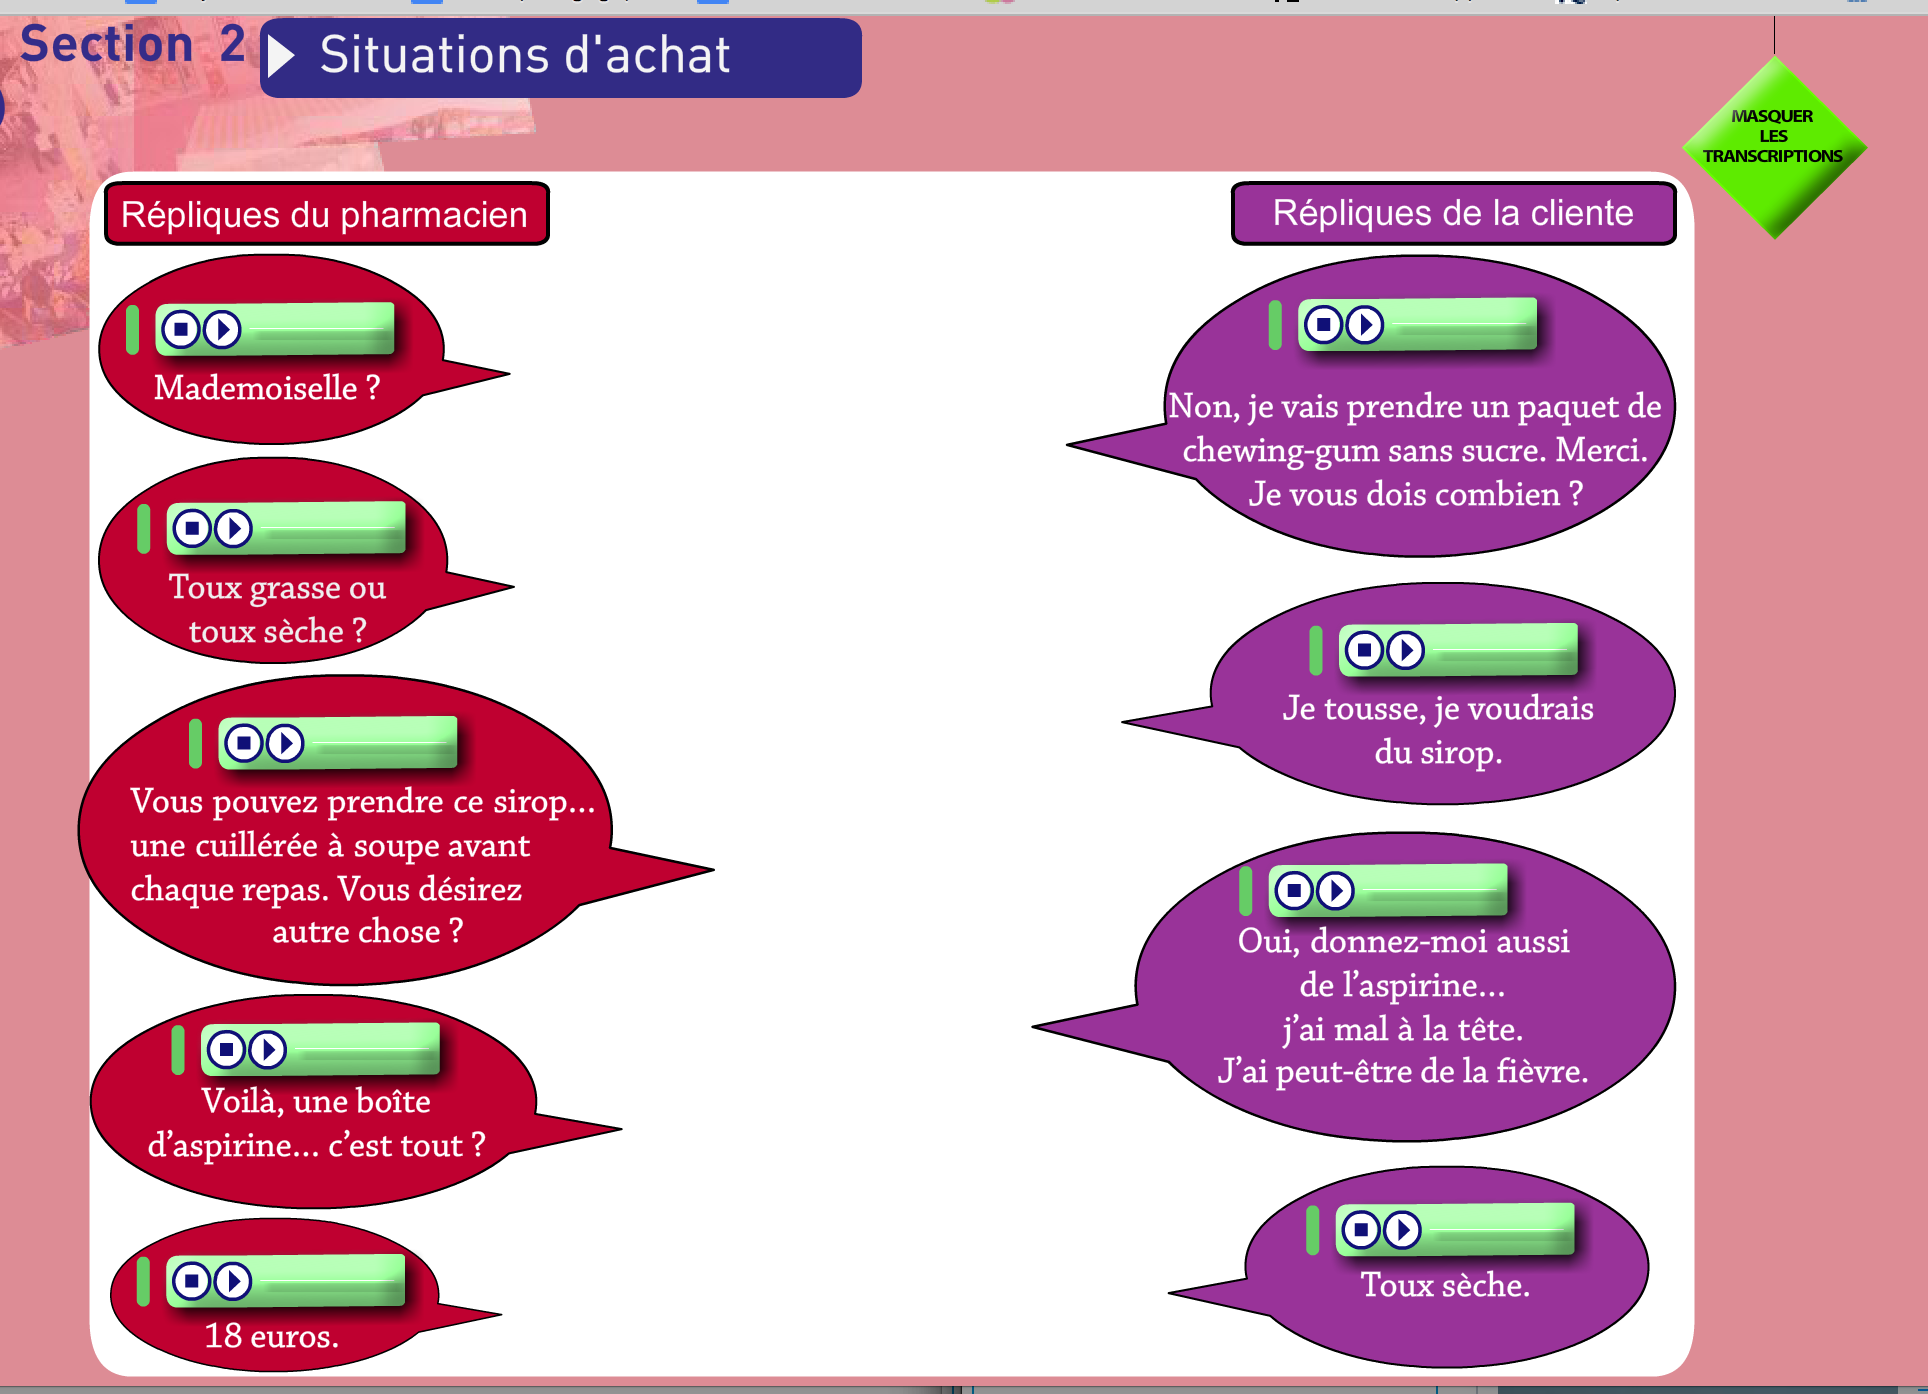 Situations d'achat – Dialogue